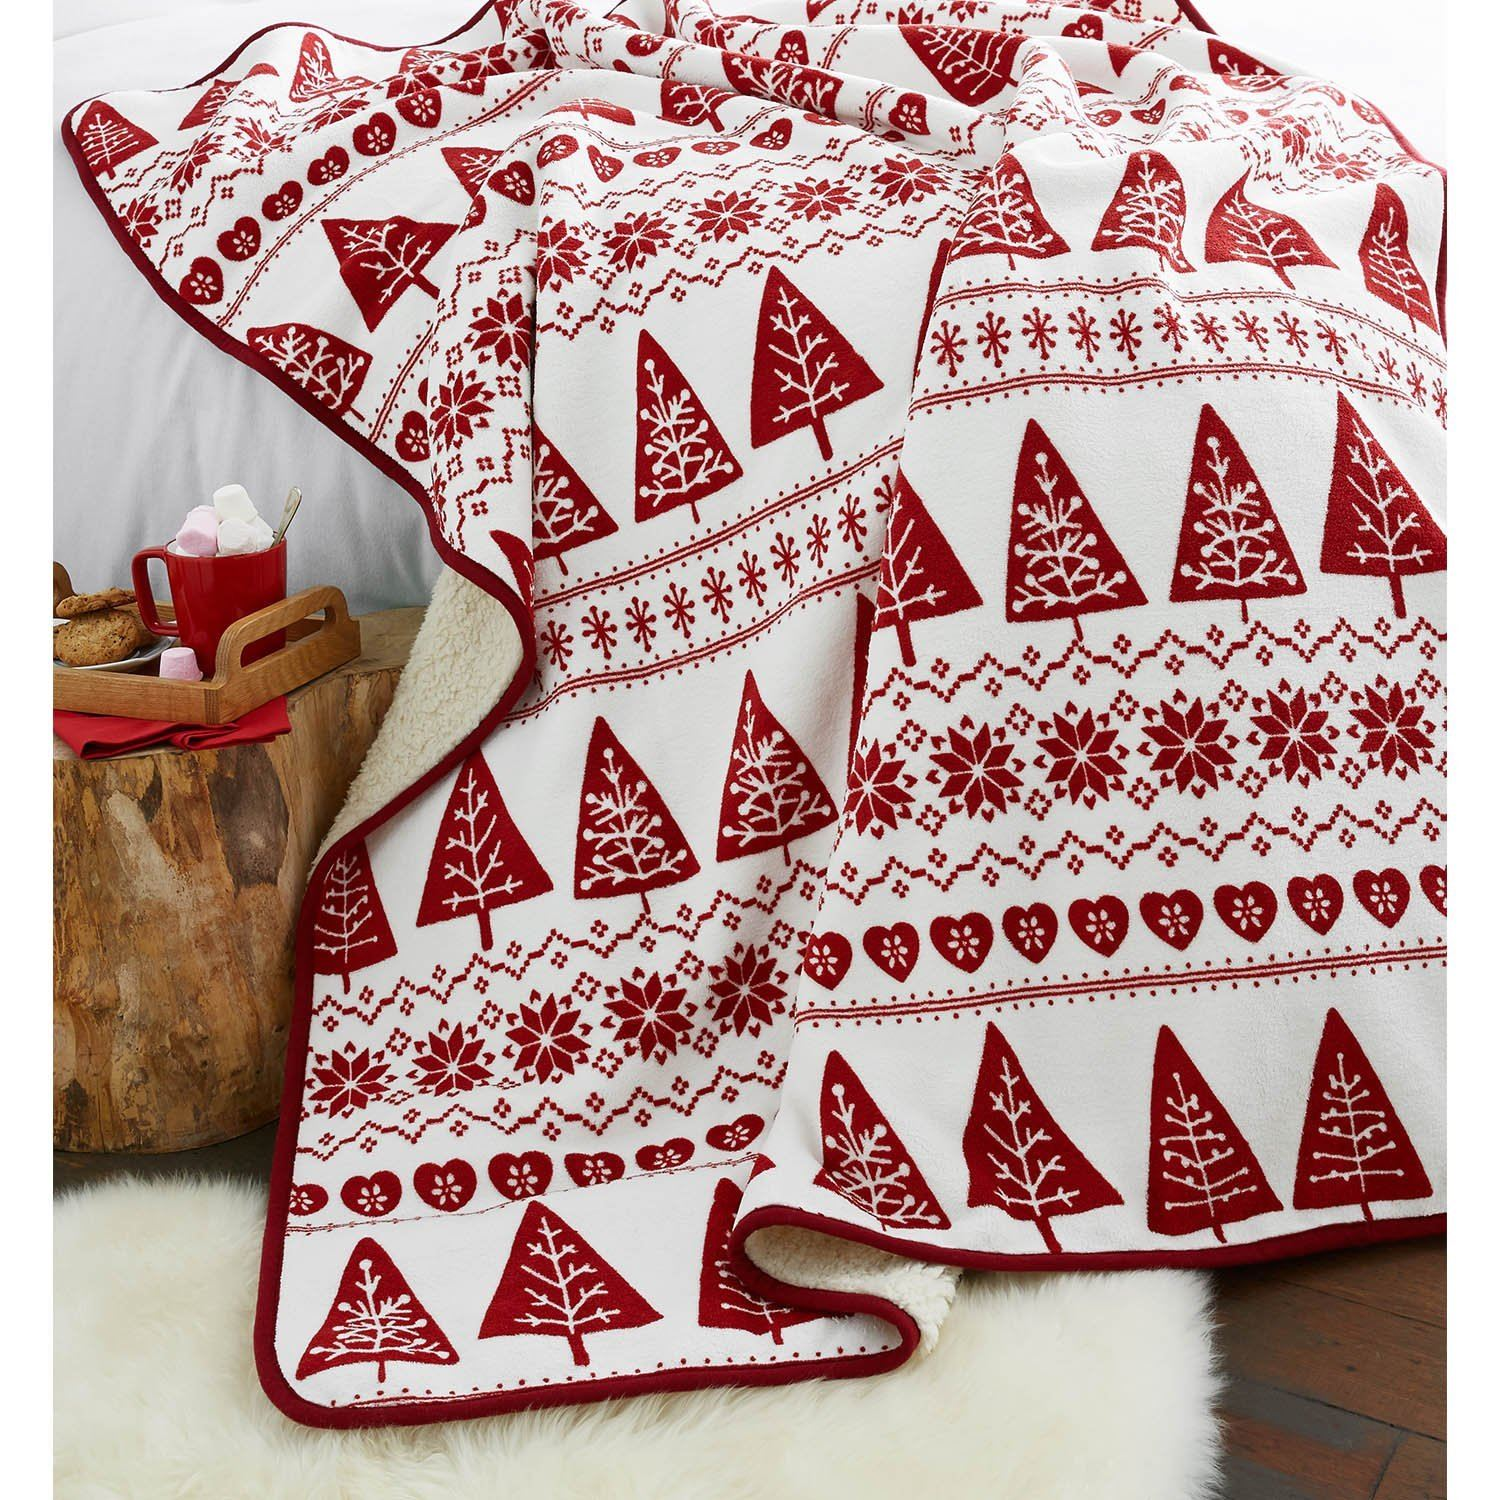 Christmas Soft Fleece Throws Decorative Bed Sofa Blanket